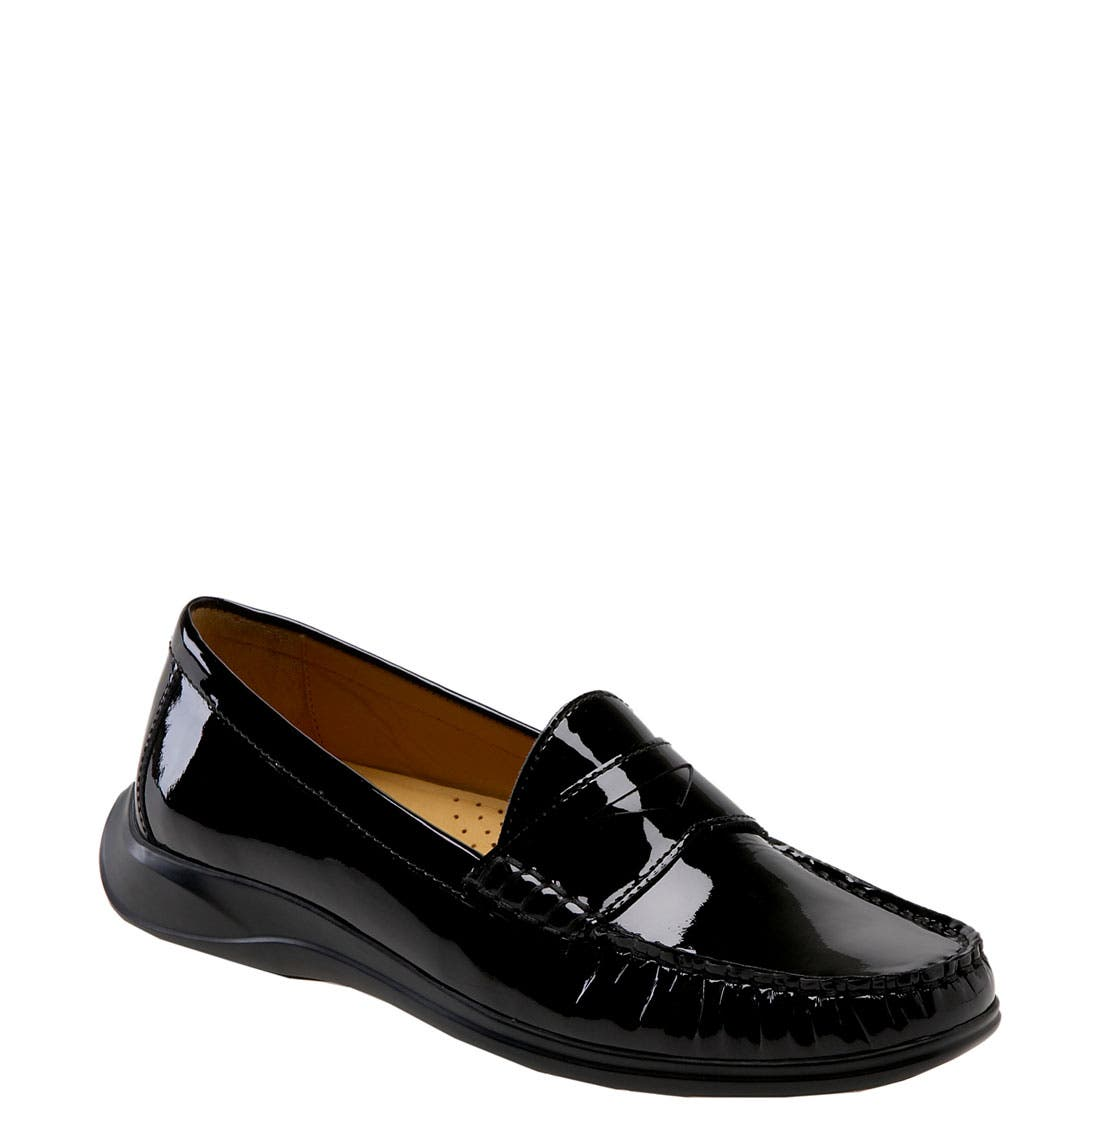 Alternate Image 1 Selected - Cole Haan 'Air Erika' Penny Loafer